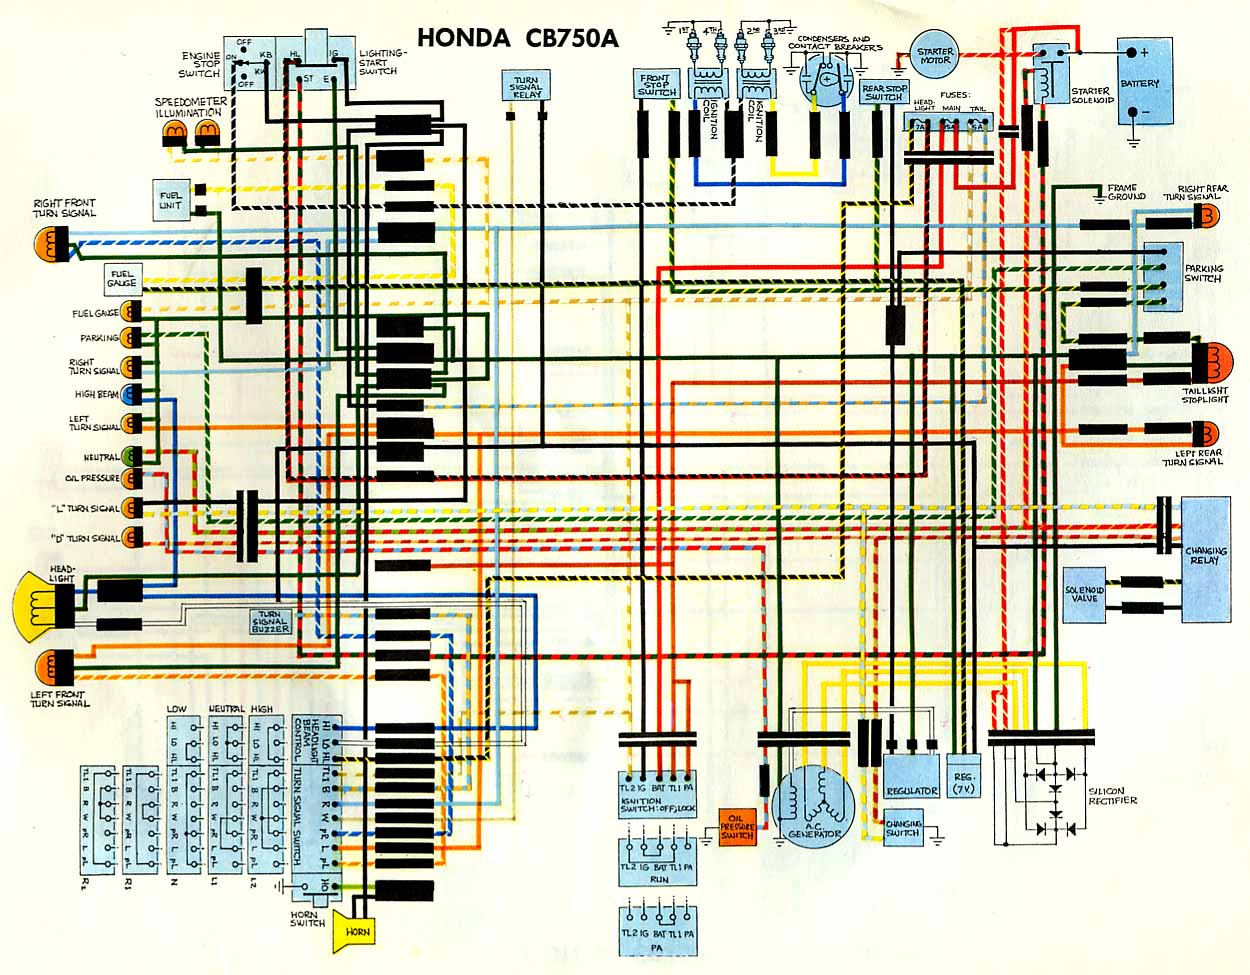 wiring diagrams wiring-diagram honda cb360 cb750 automatic jpg